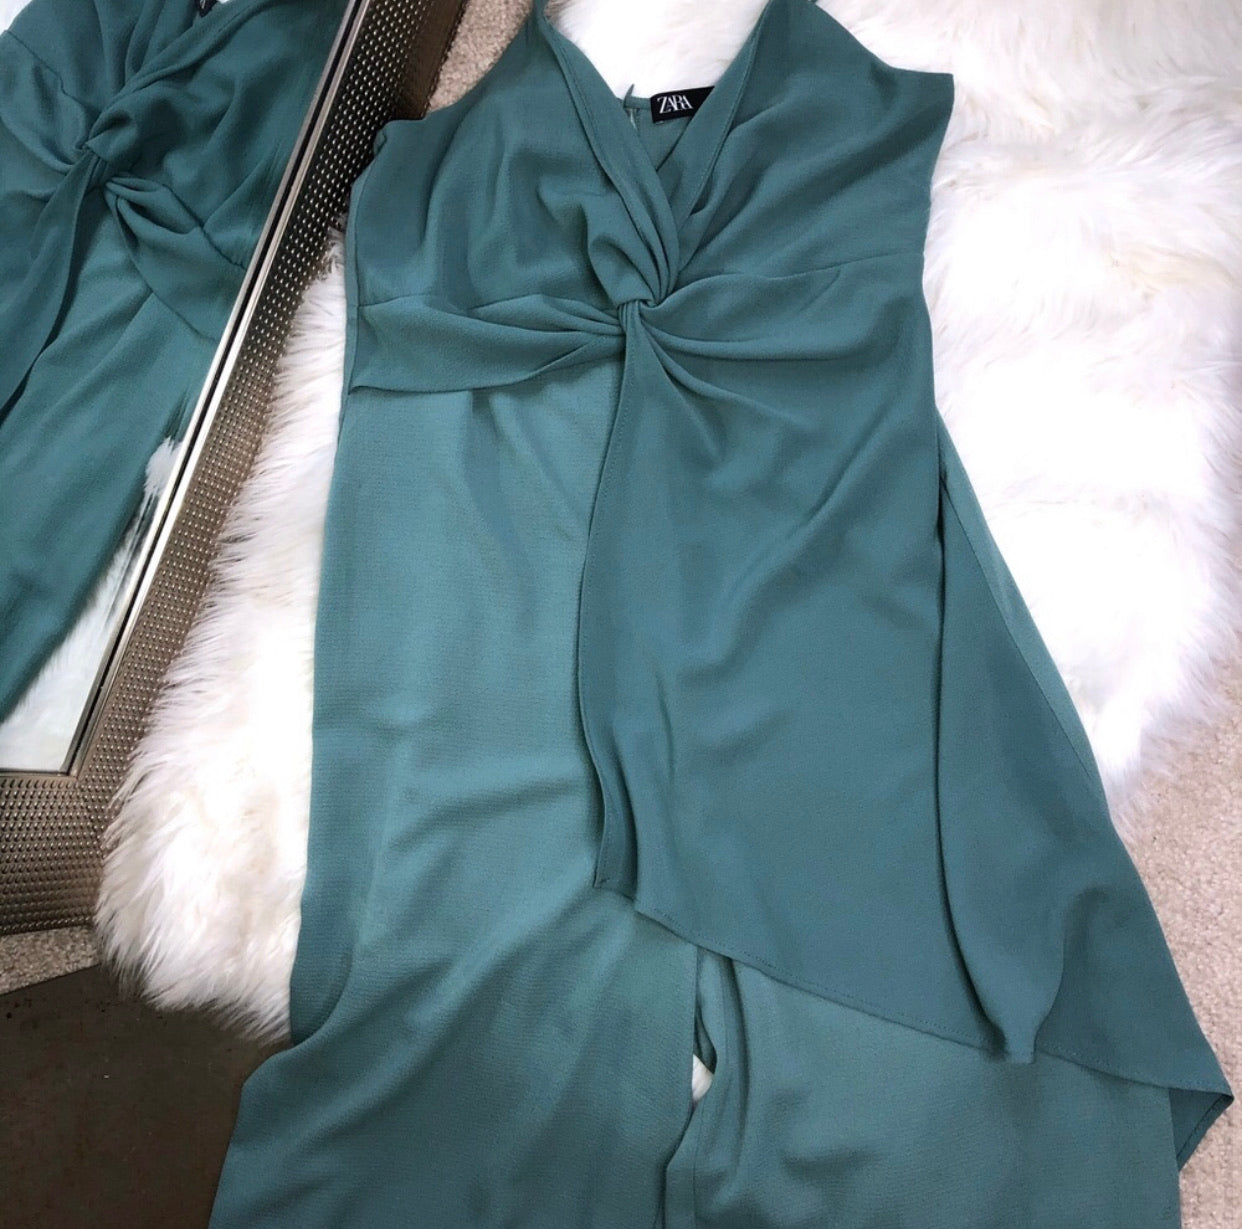 Zara emerald green jumpsuit size large